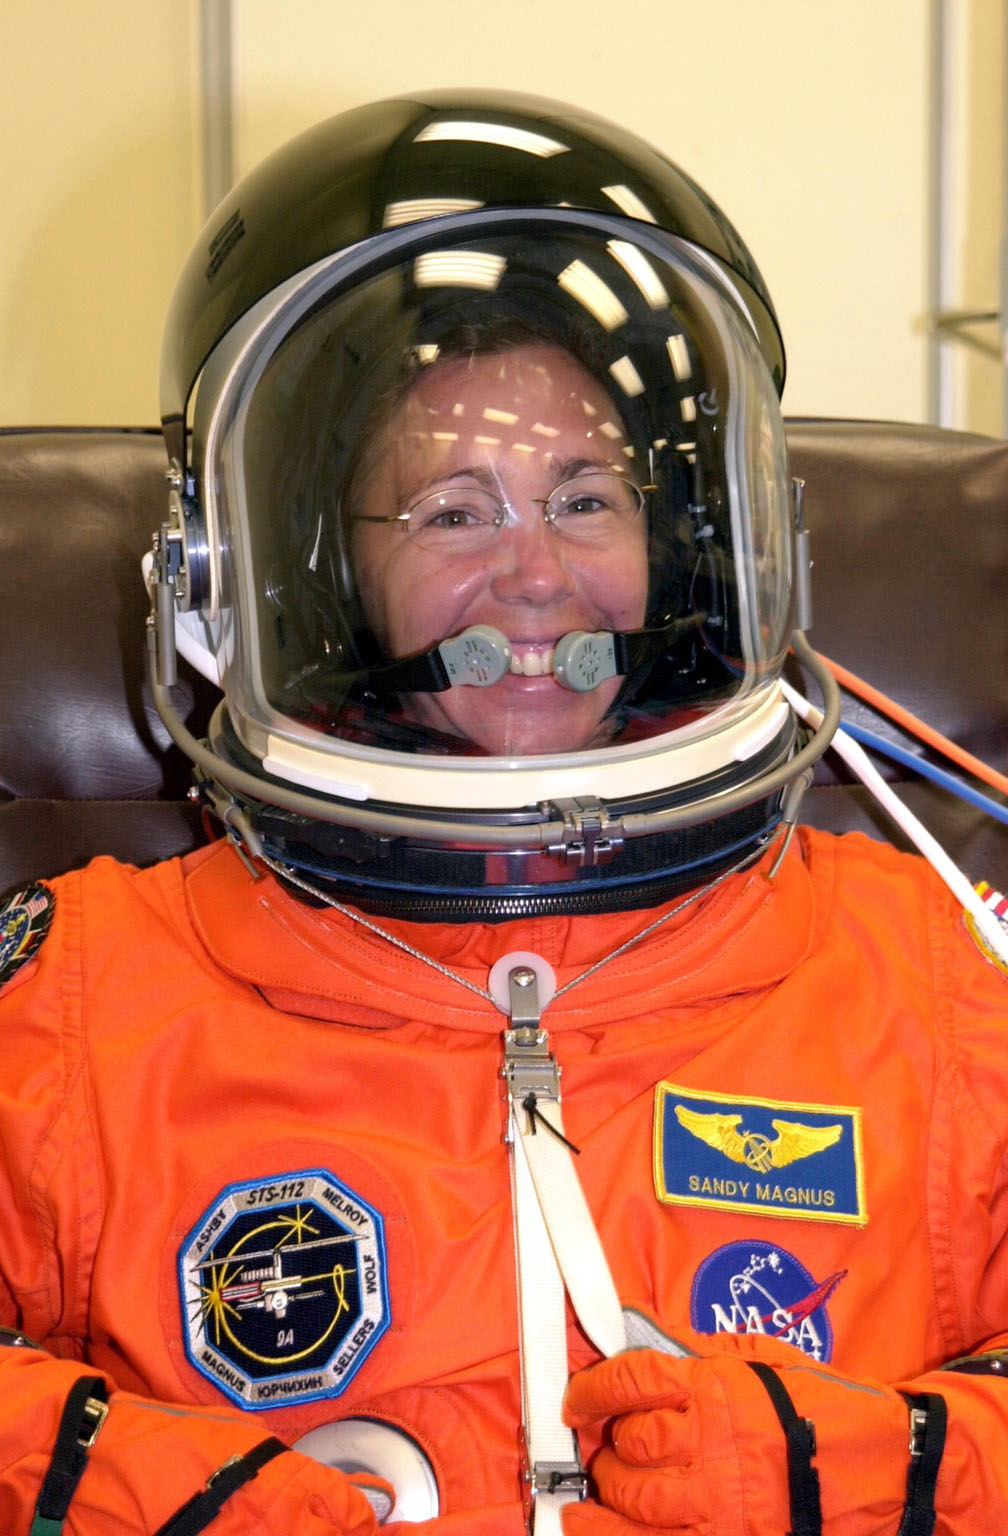 KENNEDY SPACE CENTER, FLA. --STS-112 Mission Specialist Sandra Magnus dons her spacesuit for a final fit check in preparation for her launch to the International Space Station aboard Atlantis. Launch is scheduled for Oct. 2 between 2 and 6 p.m. EDT.